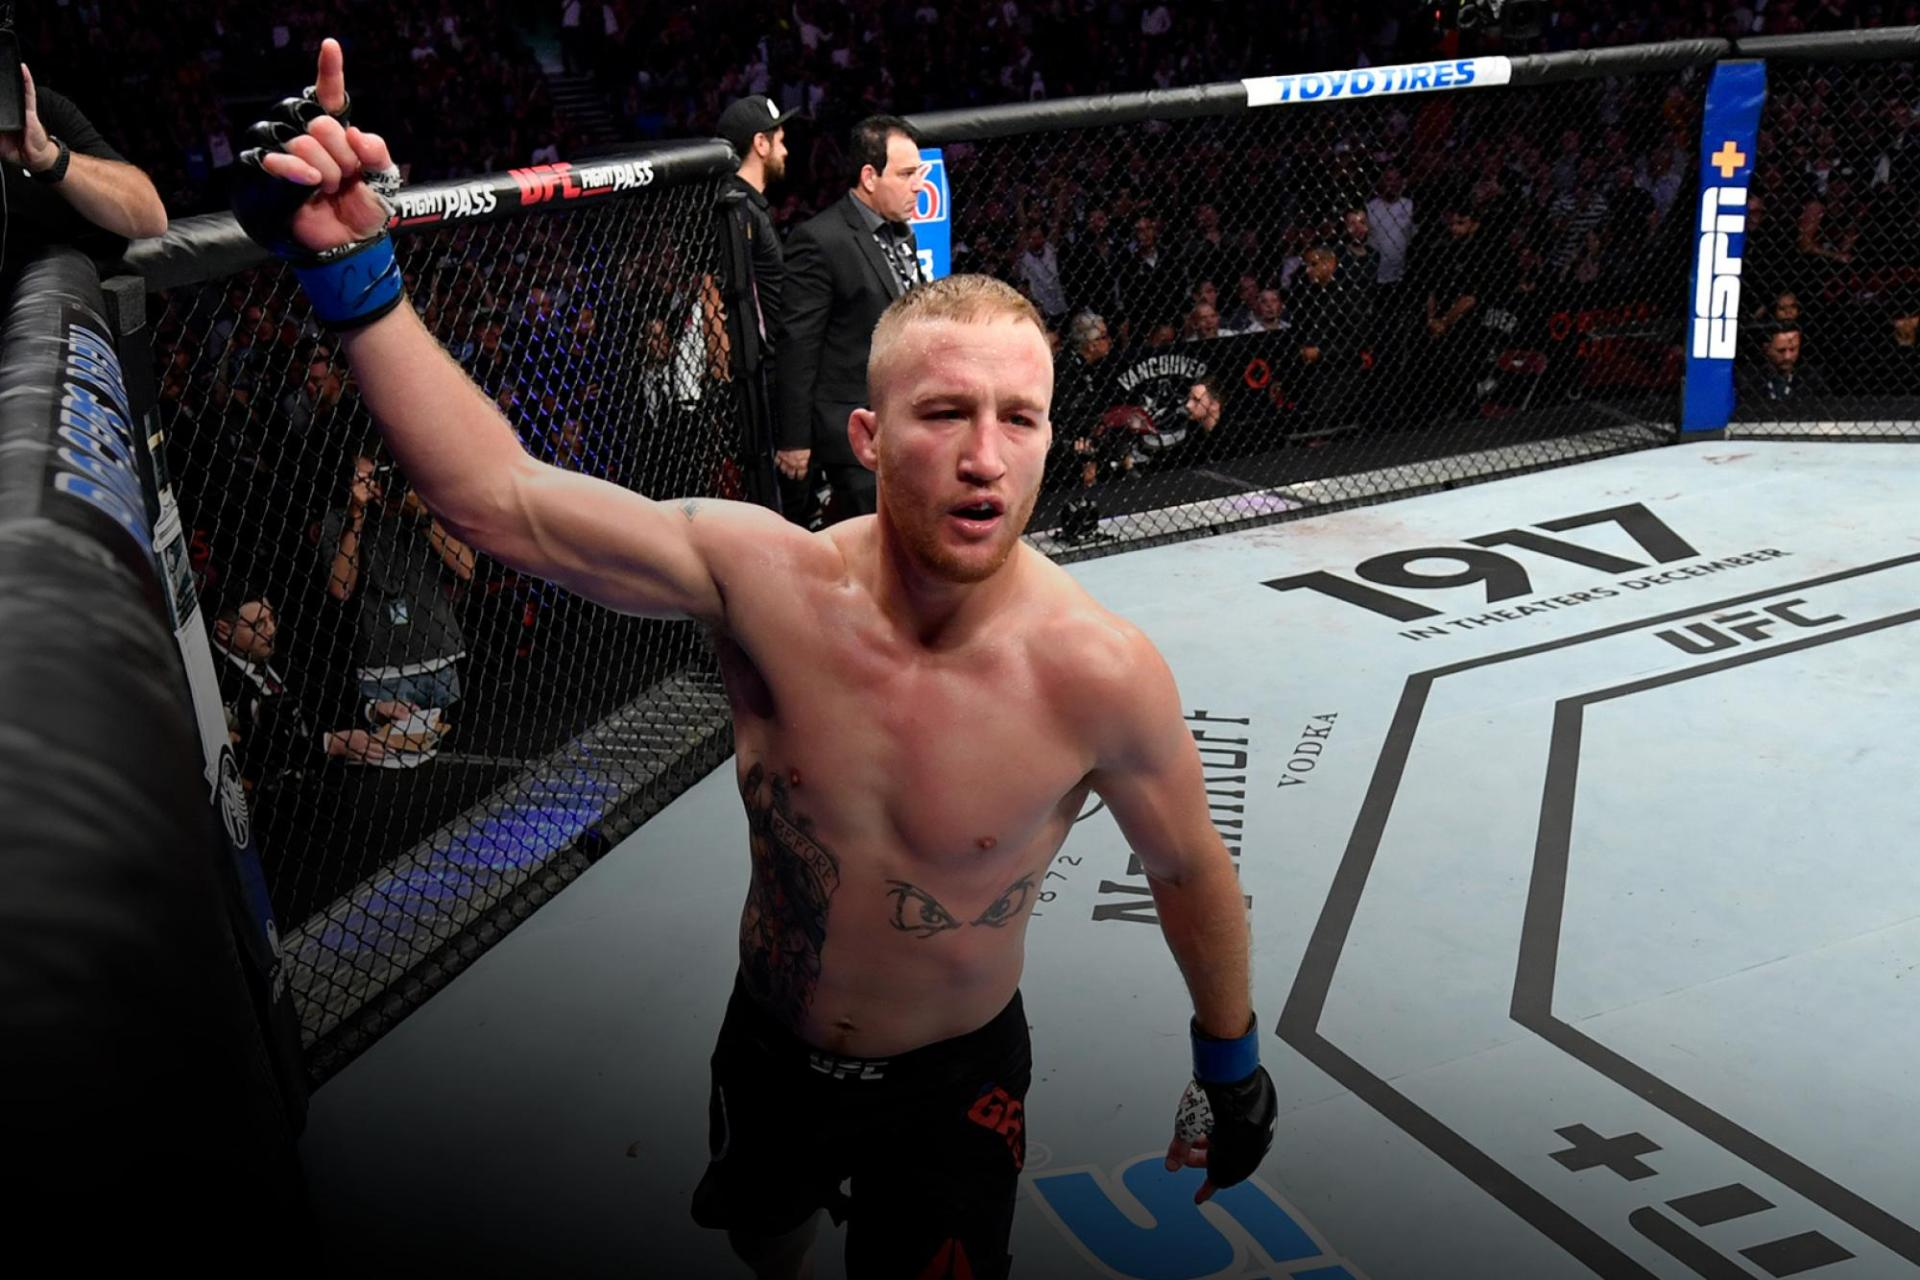 Watch Justin Gaethje claim he doesn't remember the first round after getting 'smoked' by Tony Ferguson - Justin Gaethje